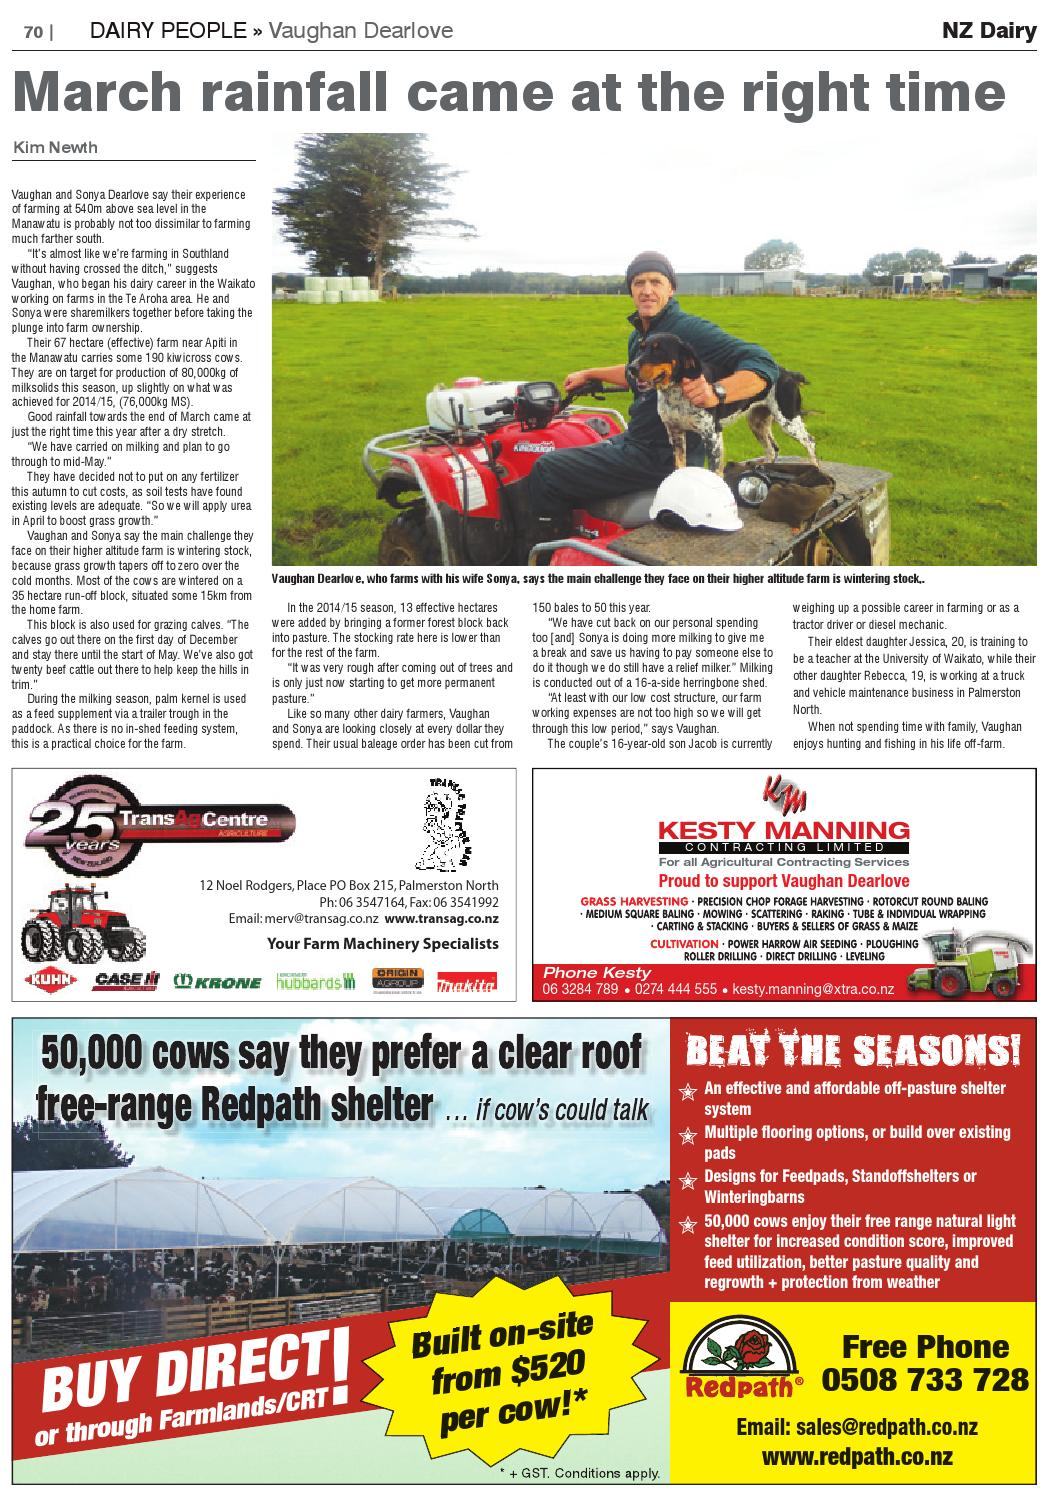 Nz dairy 2016 Autumn Issue by Waterford Press Limited - issuu